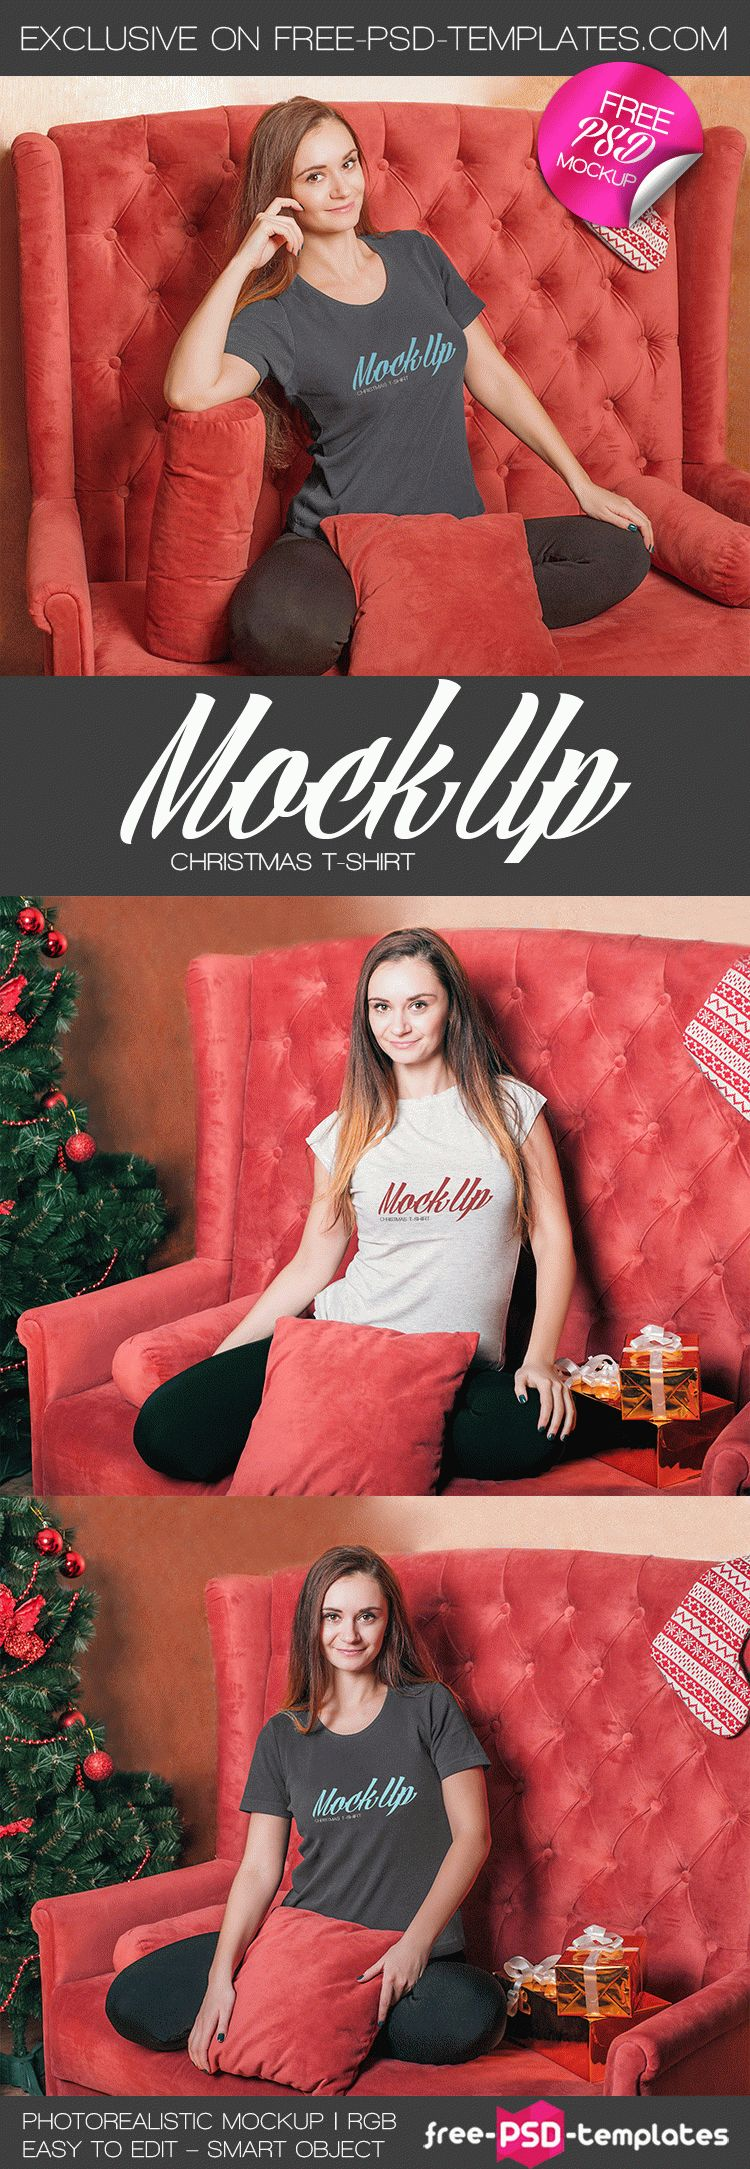 Free Christmas T Shirt Mock Up In Psd Free Psd Templates